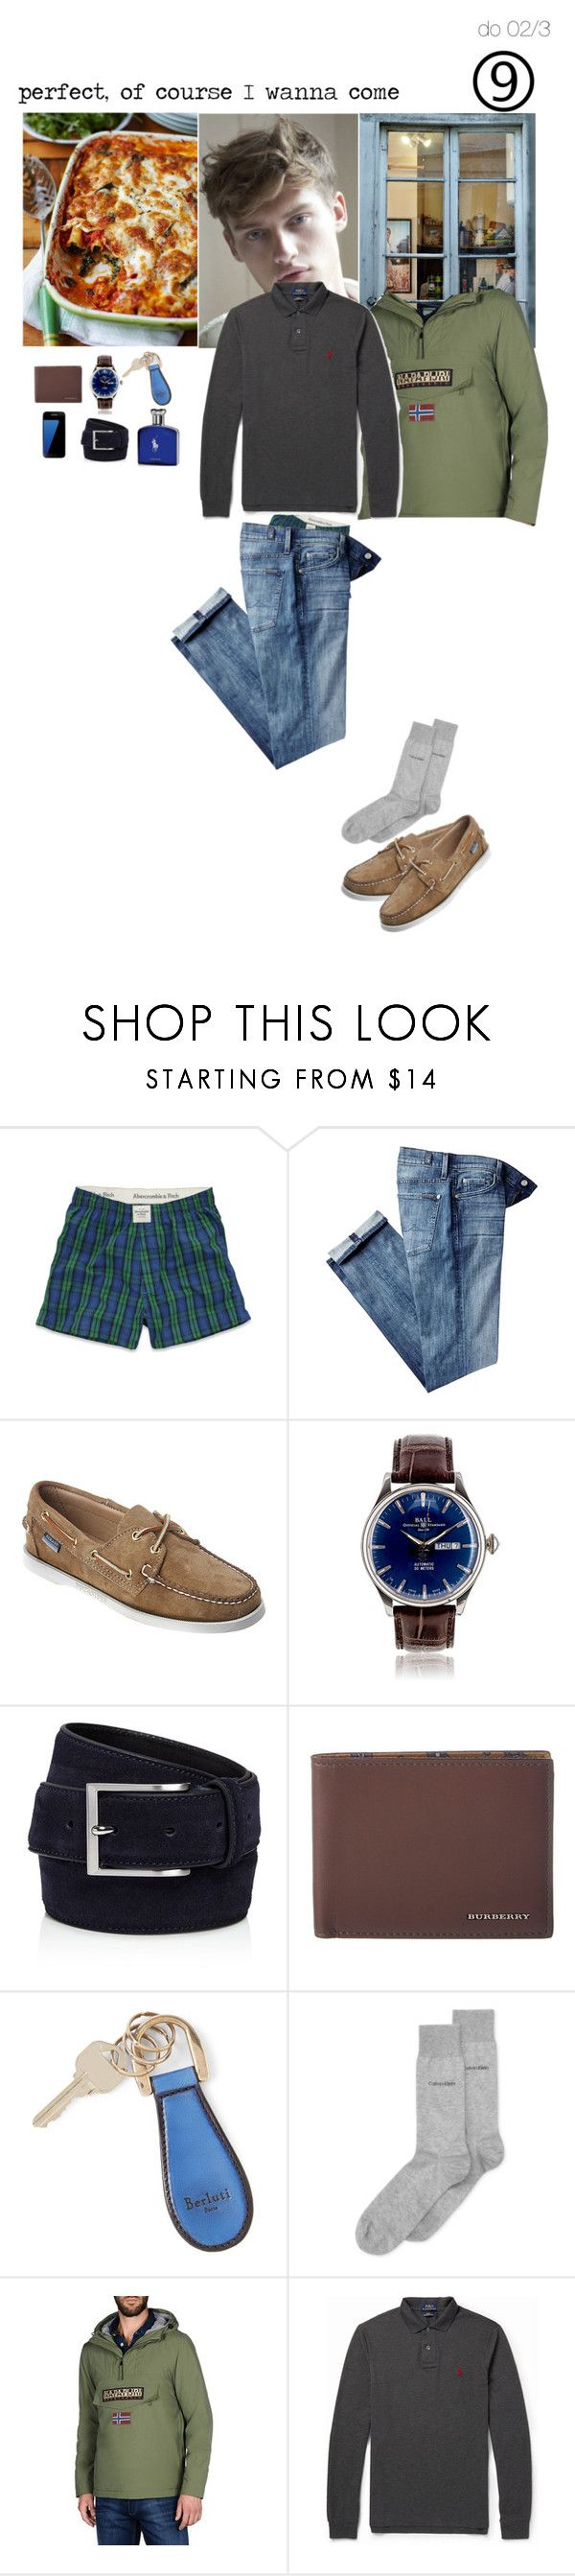 """""""Perfect, of course I wanna come"""" by adelaidesmitha ❤ liked on Polyvore featuring Abercrombie & Fitch, 7 For All Mankind, Sebago, To Boot New York, Burberry, Samsung, Berluti, Calvin Klein, Napapijri and Polo Ralph Lauren"""